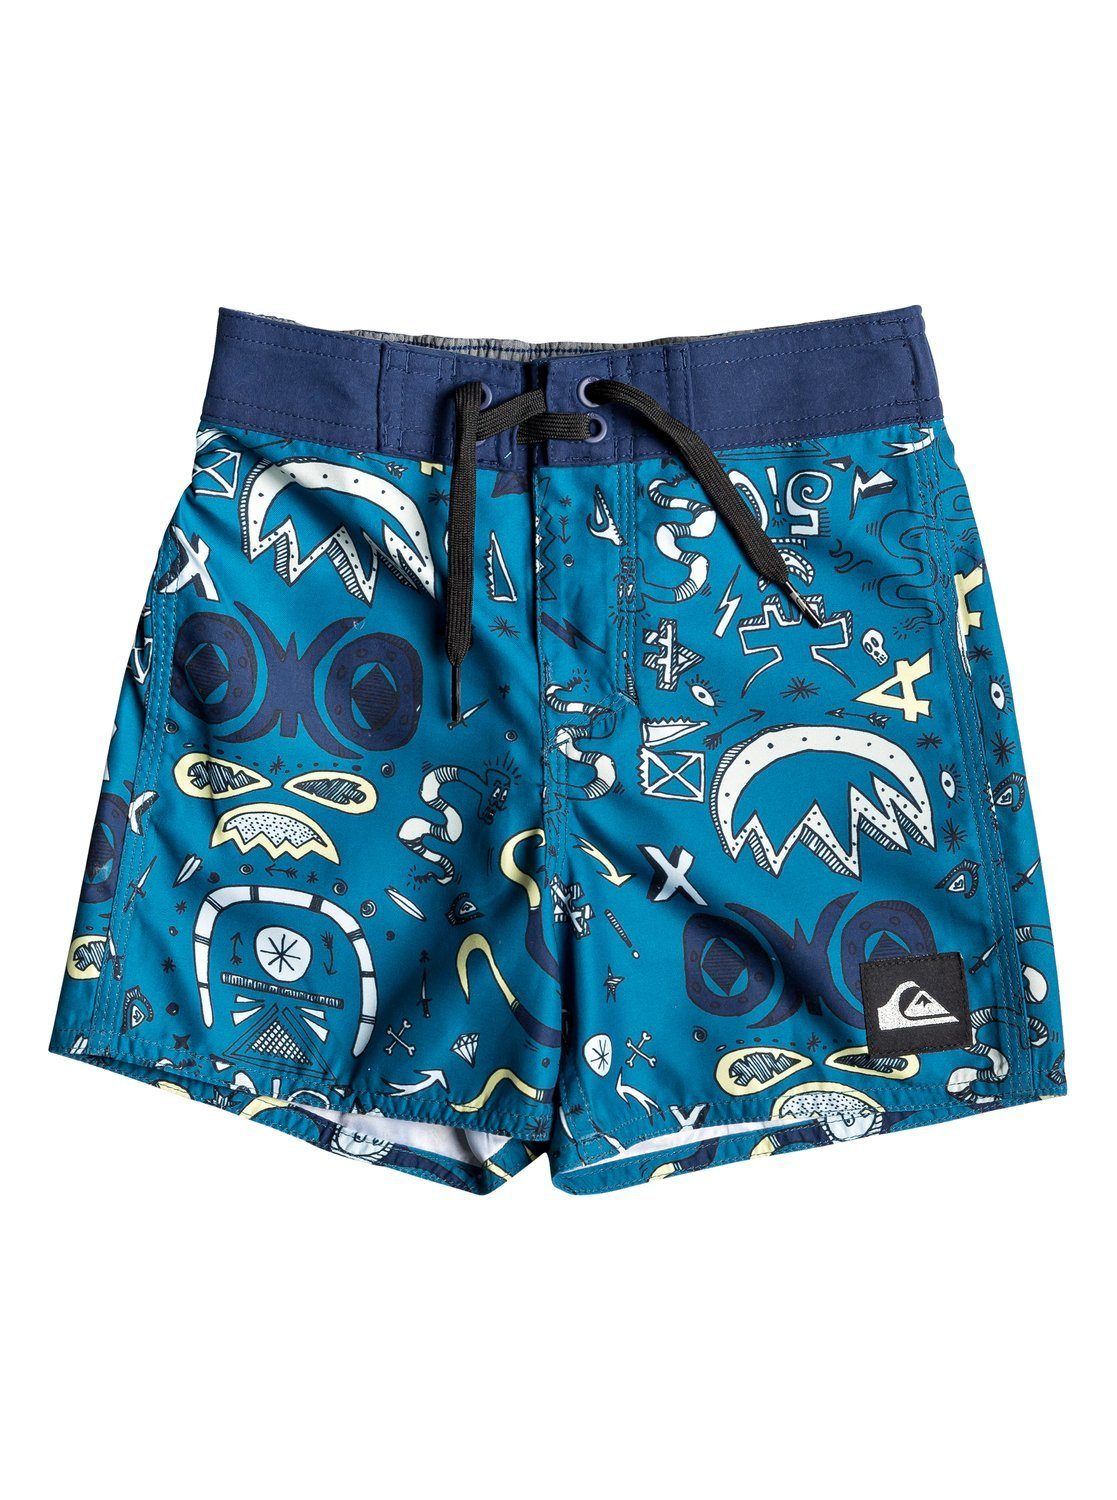 OTTO | SALE Herren Quiksilver Boardshorts »Secret Ingredient